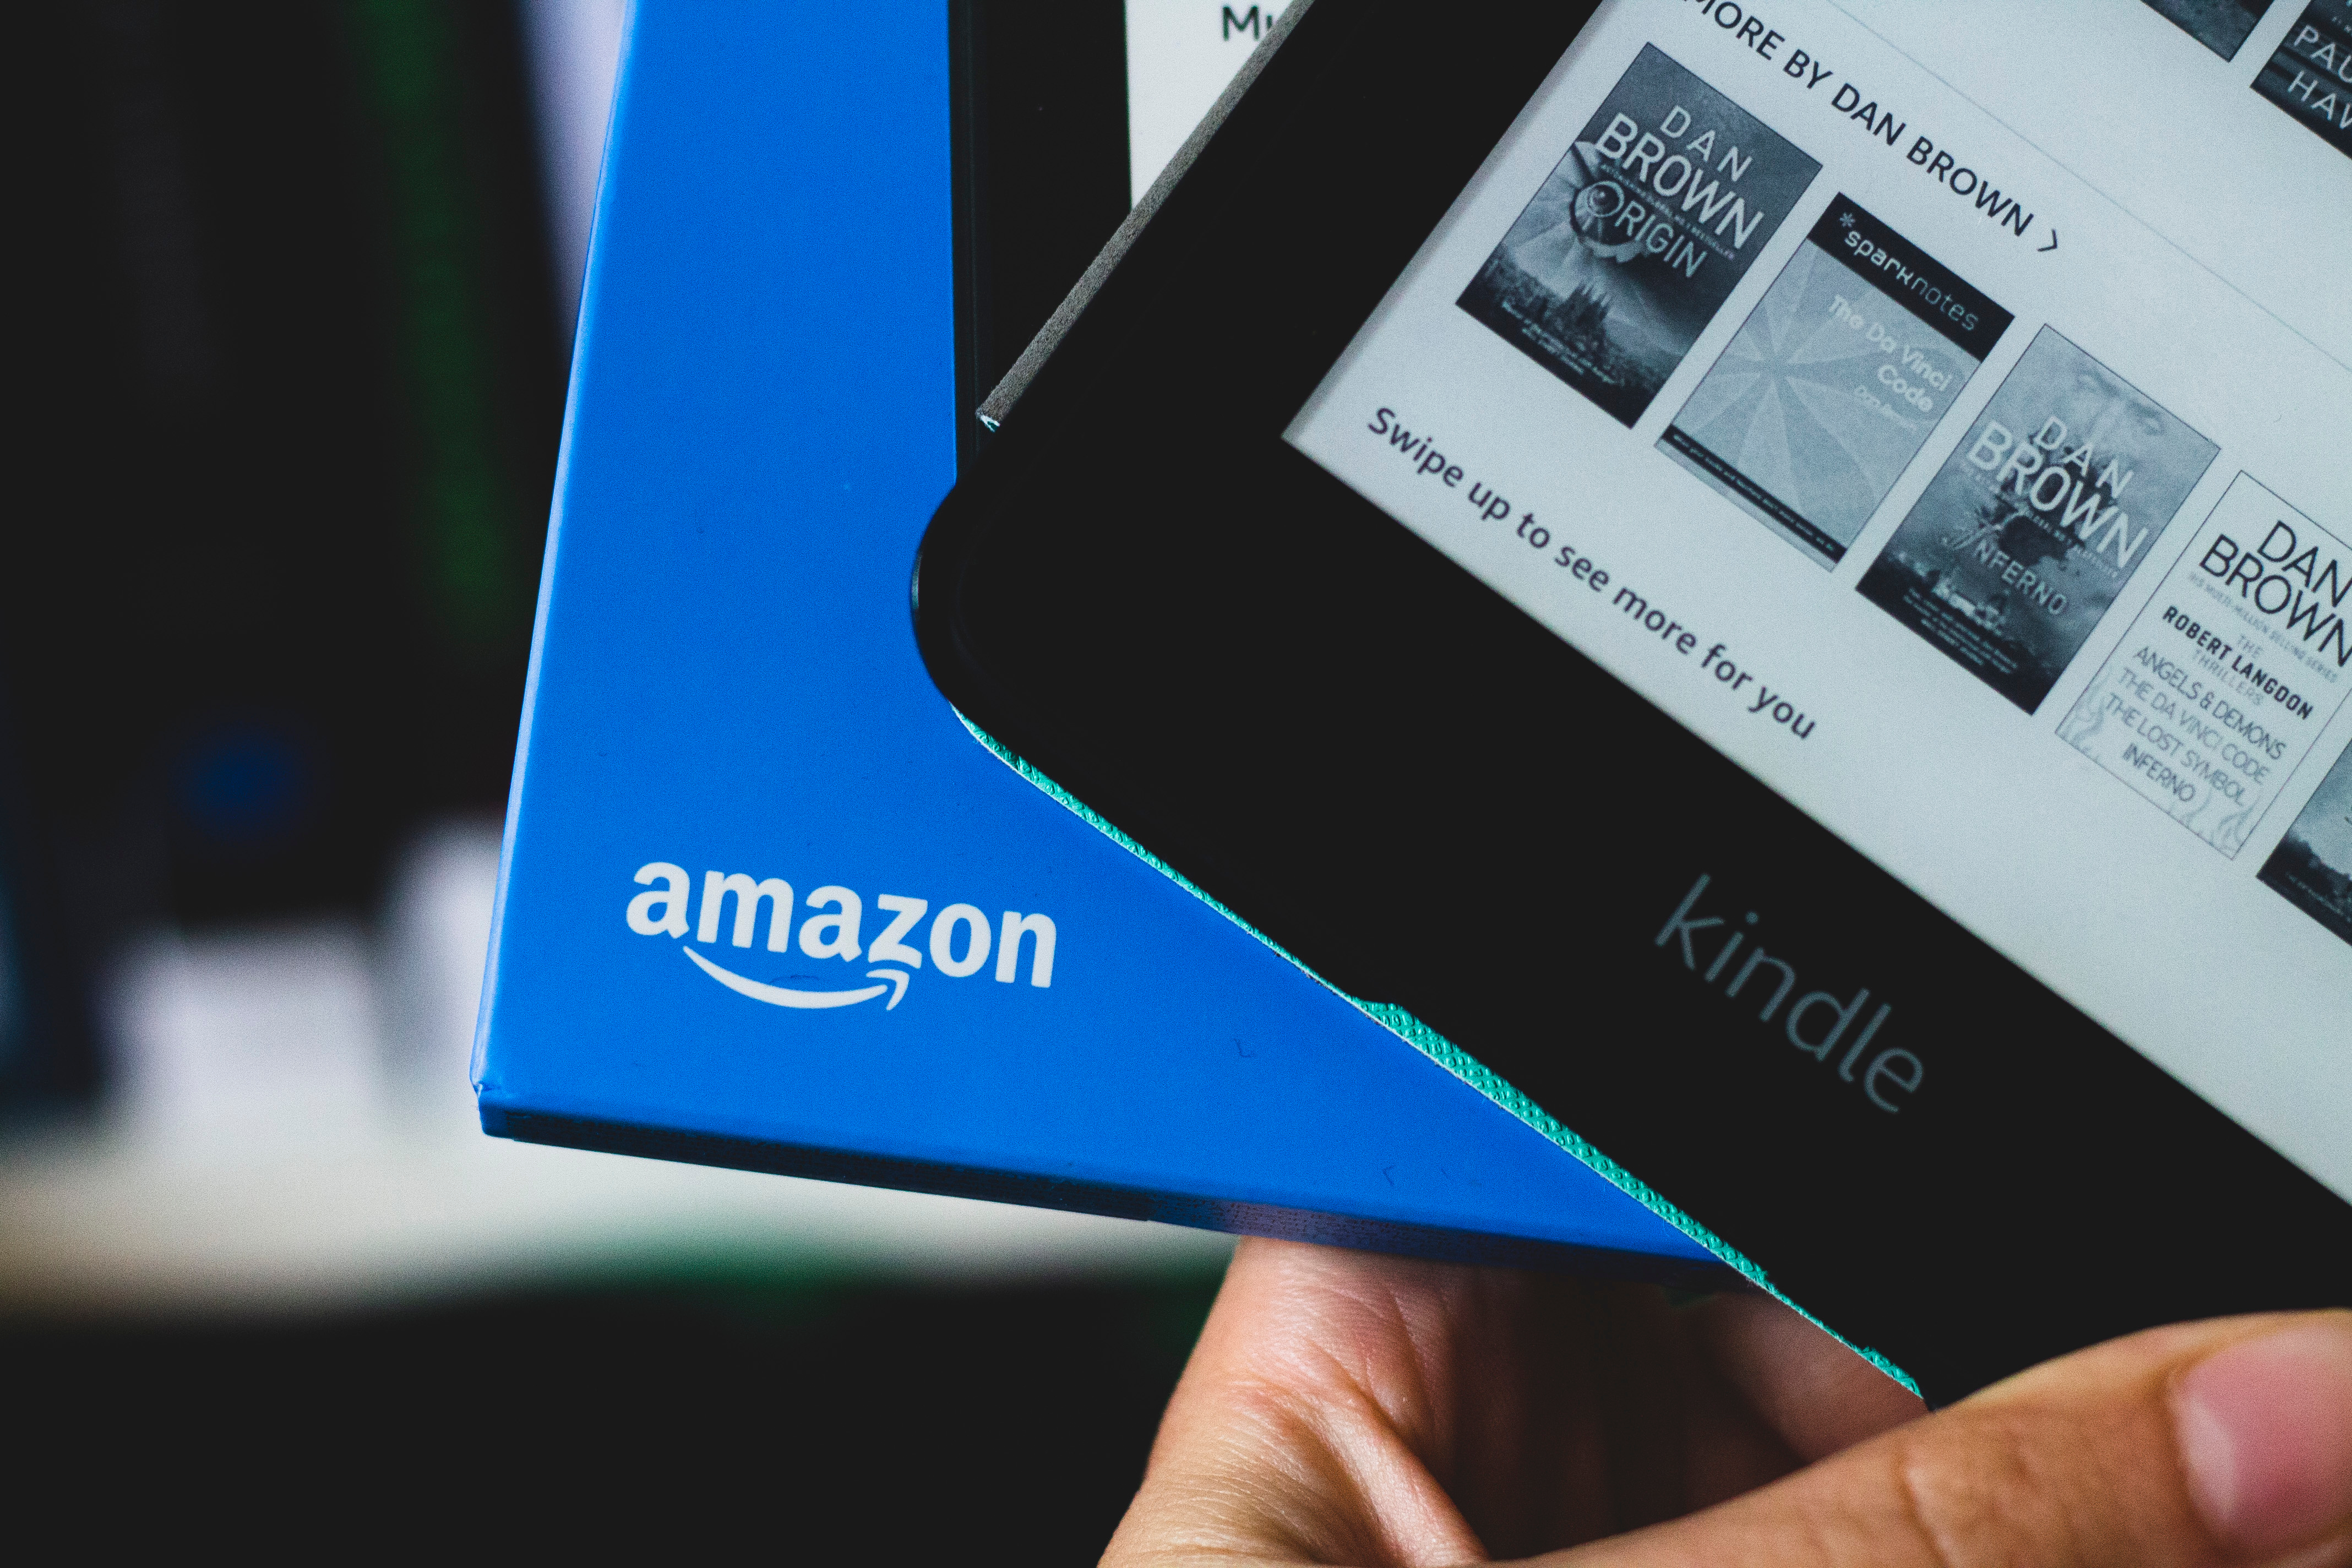 Amazon Kindle allows you to buy ads that potentially drive traffic back to Amazon.